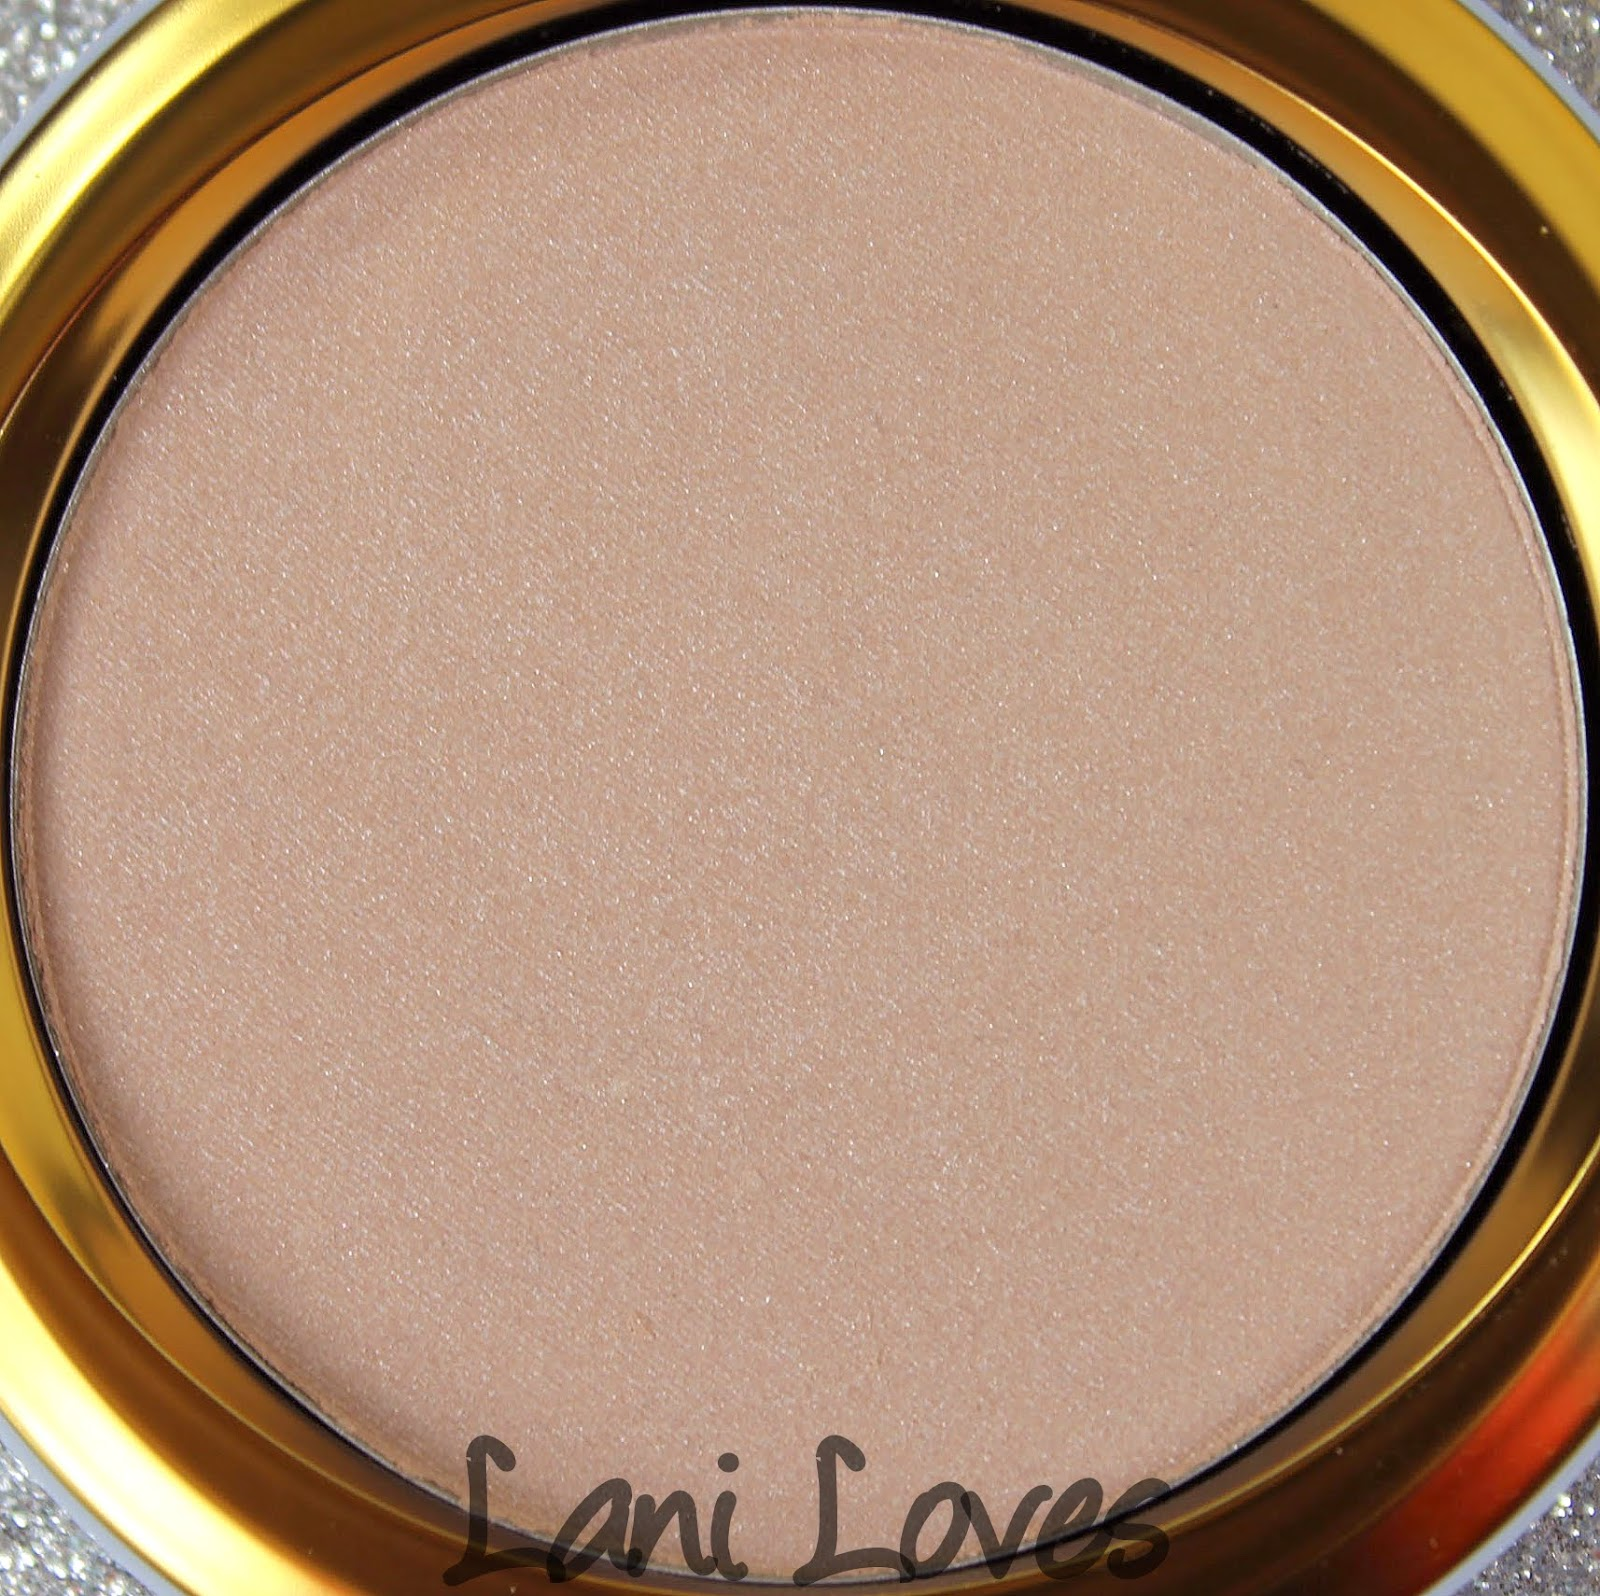 MAC Monday: Cinderella - Mystery Princess Beauty Powder Swatches & Review